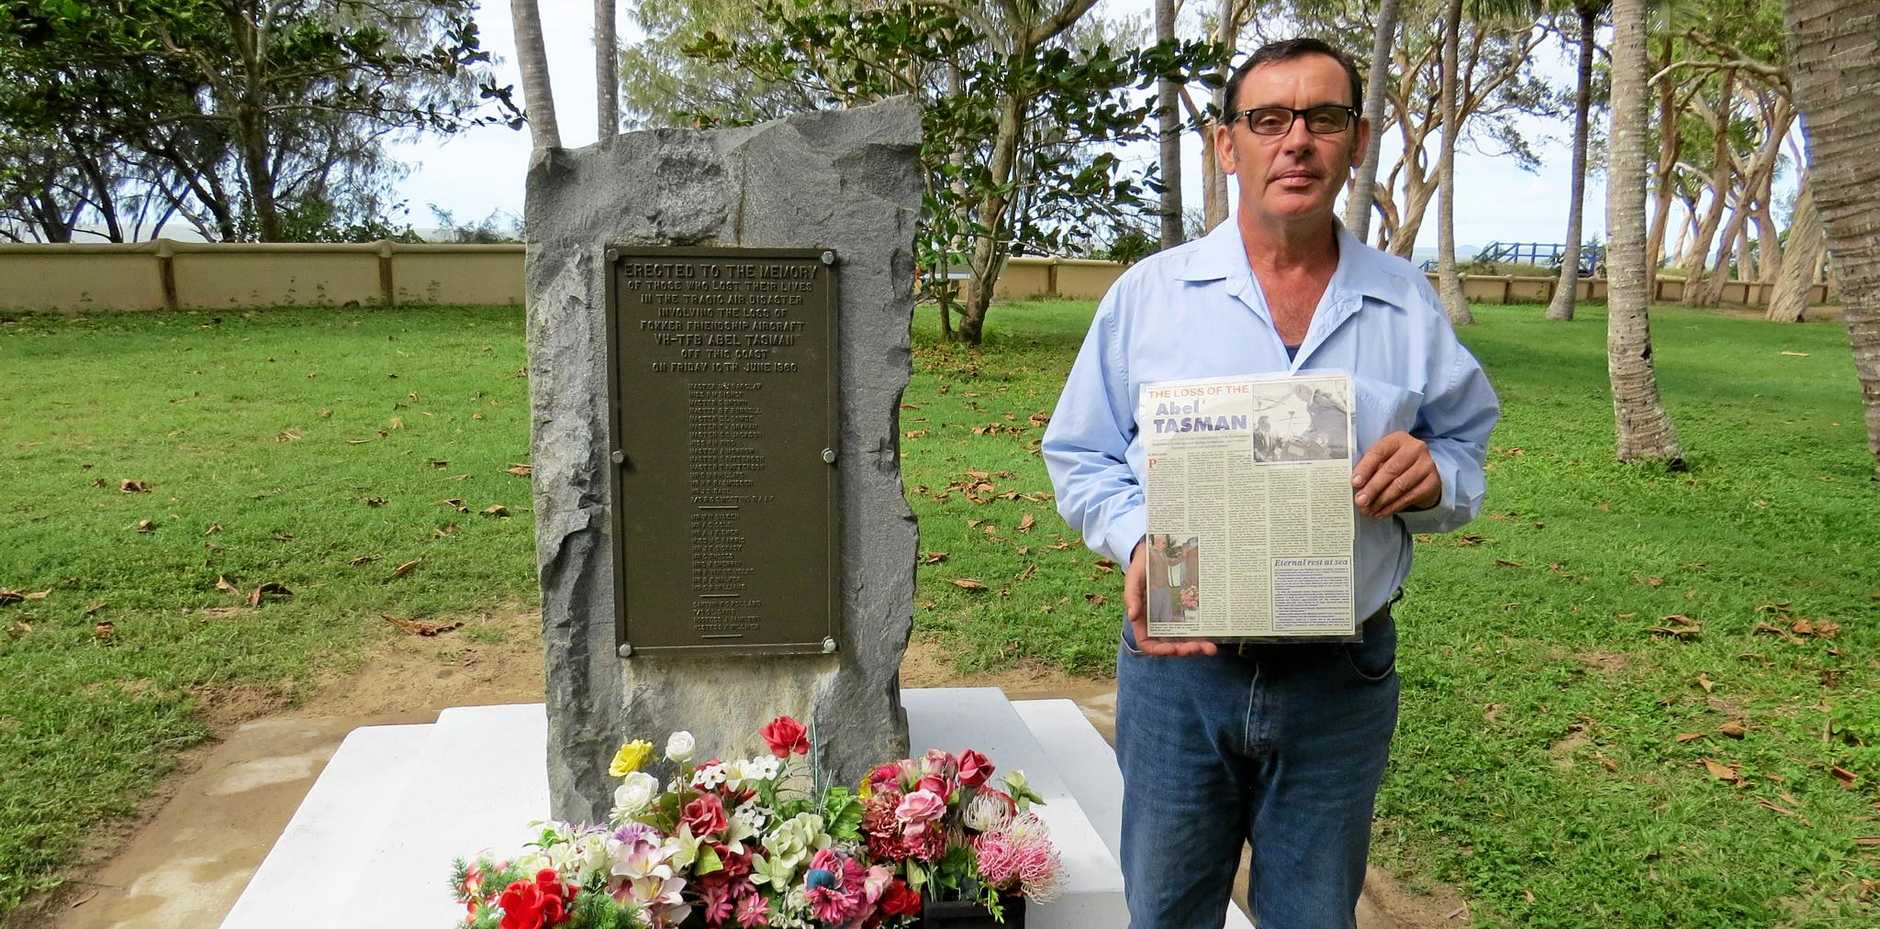 Andrew Barclay, who says there has been a cover-up, at the crash memorial at Far Beach